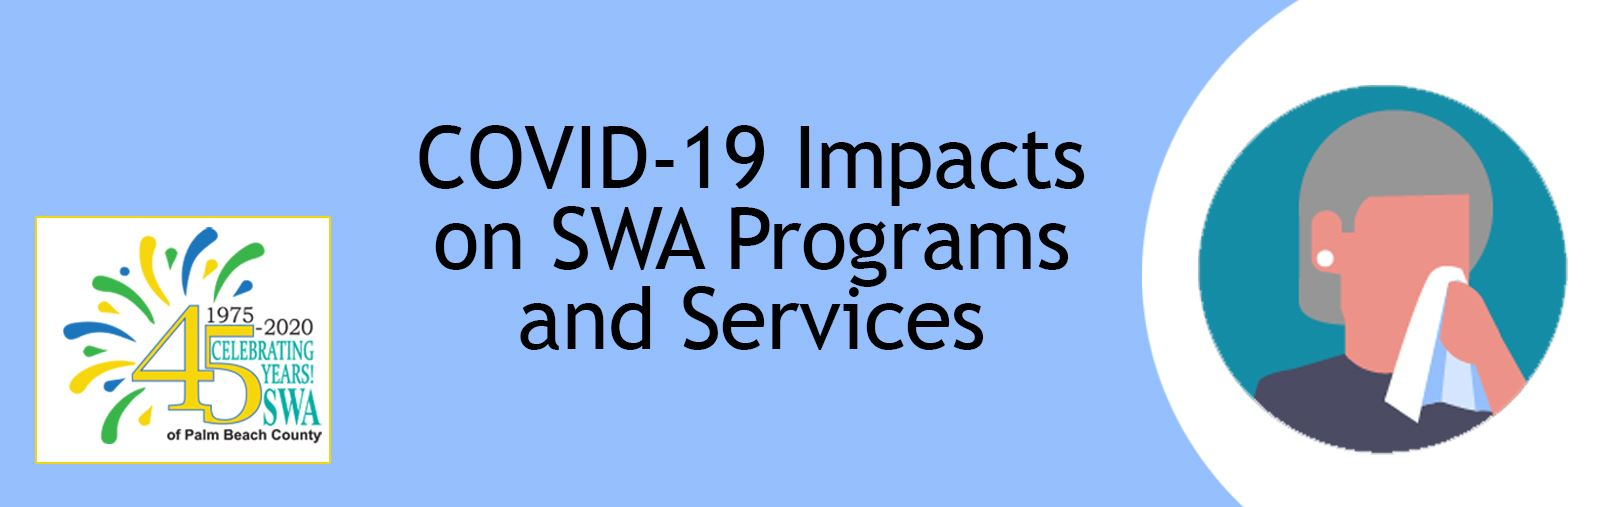 COVID-19 Impacts on SWA Programs and Services